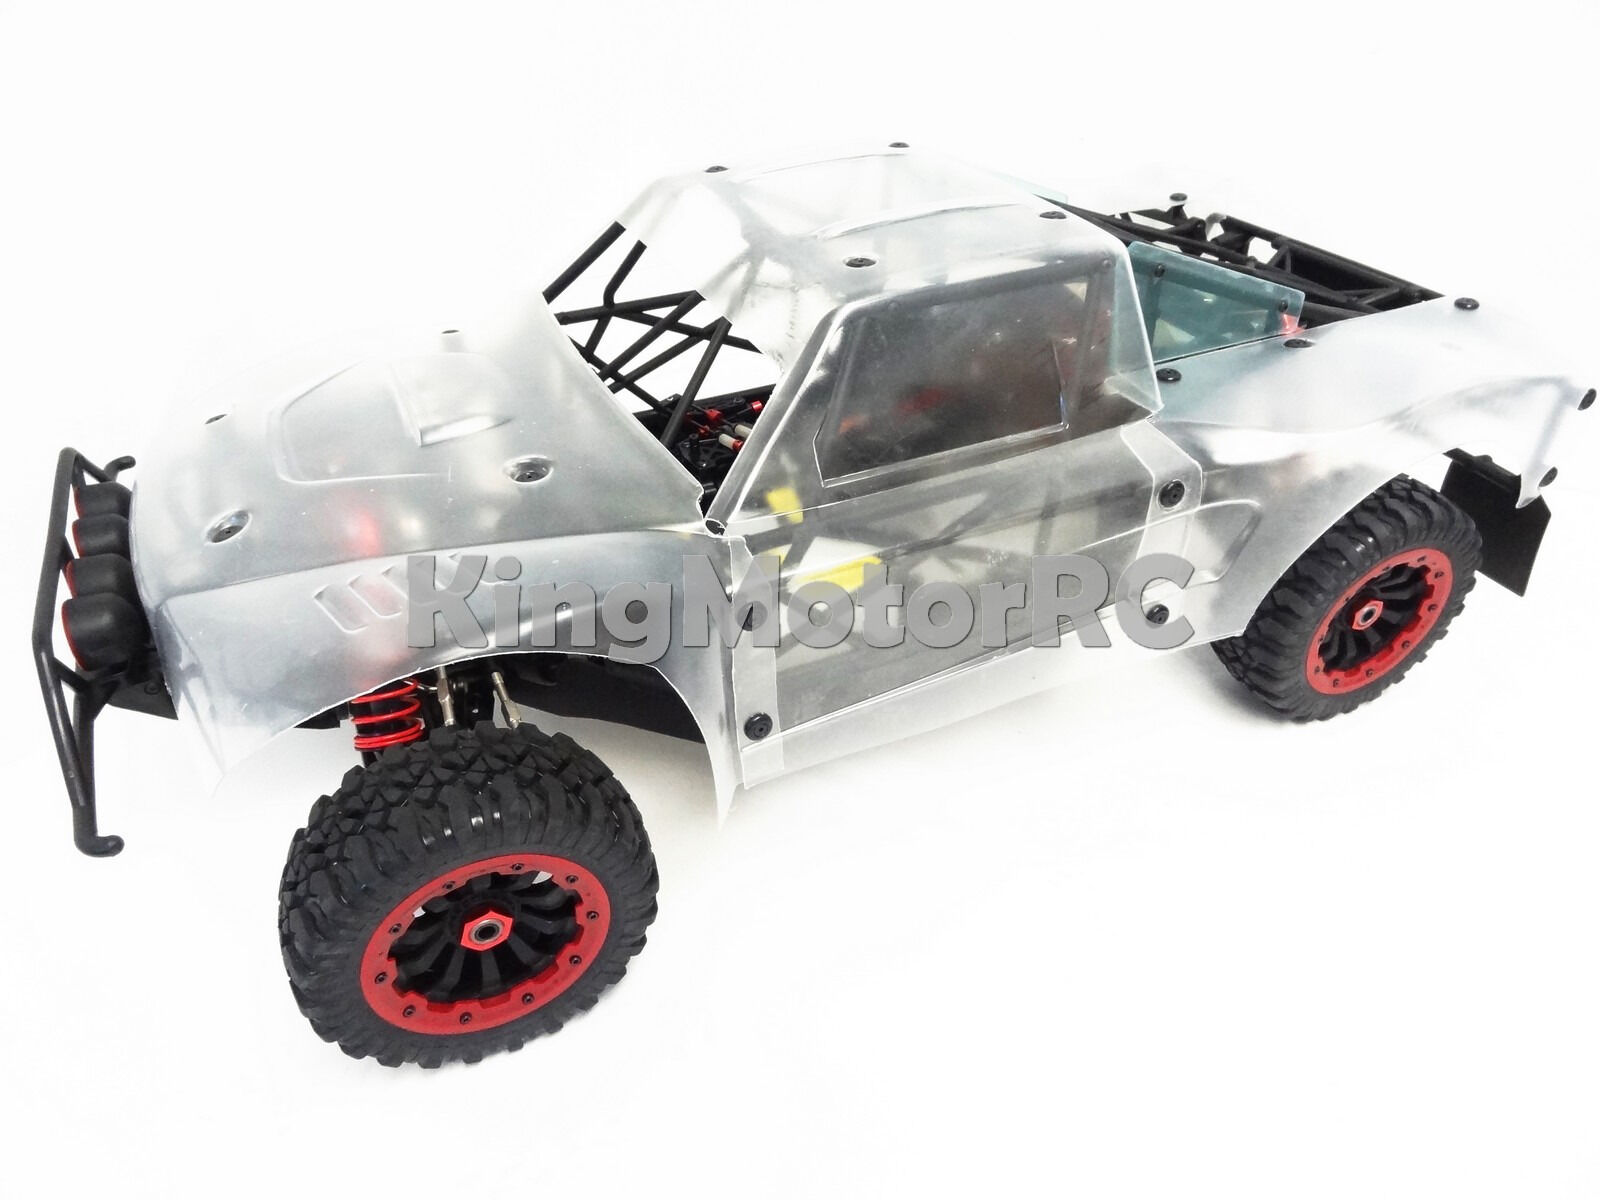 New 15 King Motor Rc X2 Roller Truck Clear Body Losi 5ive